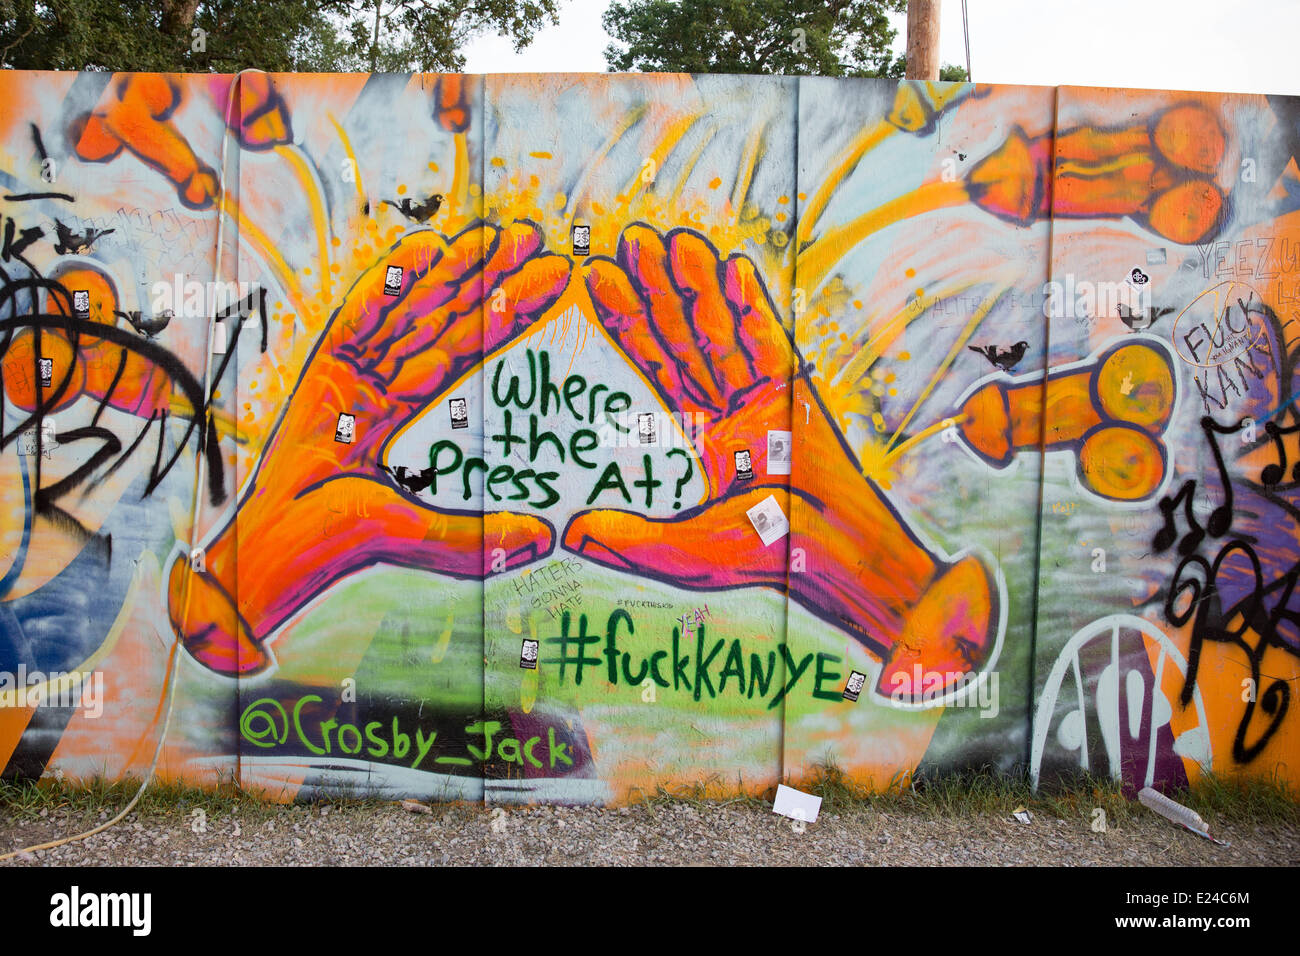 Manchester, Tennessee, USA. 15th June, 2014. Graffiti art mural showing the artist's distaste for Kanye West - Stock Image